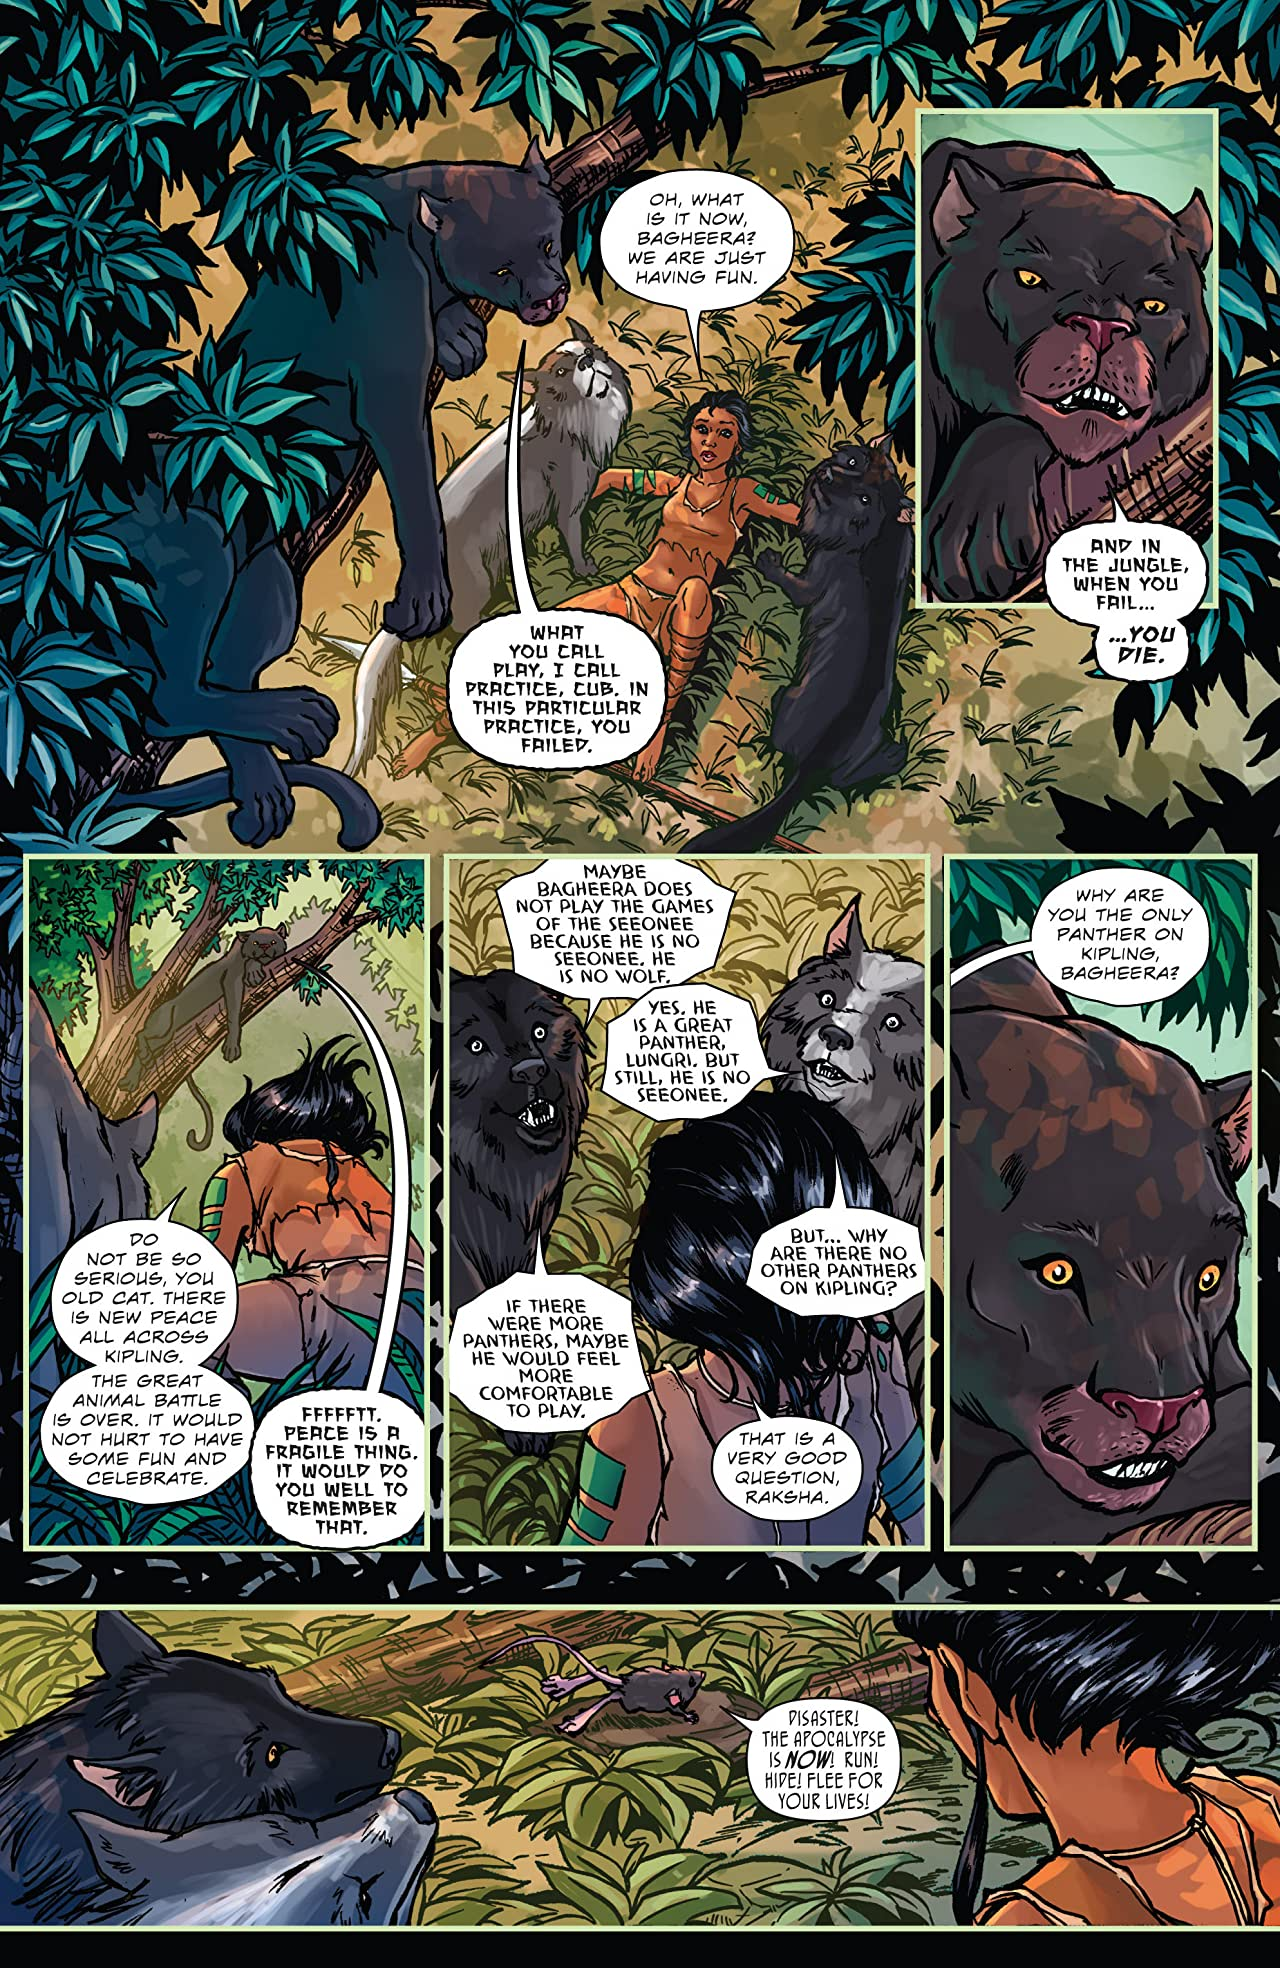 The Jungle Book 2016 Holiday Special #1